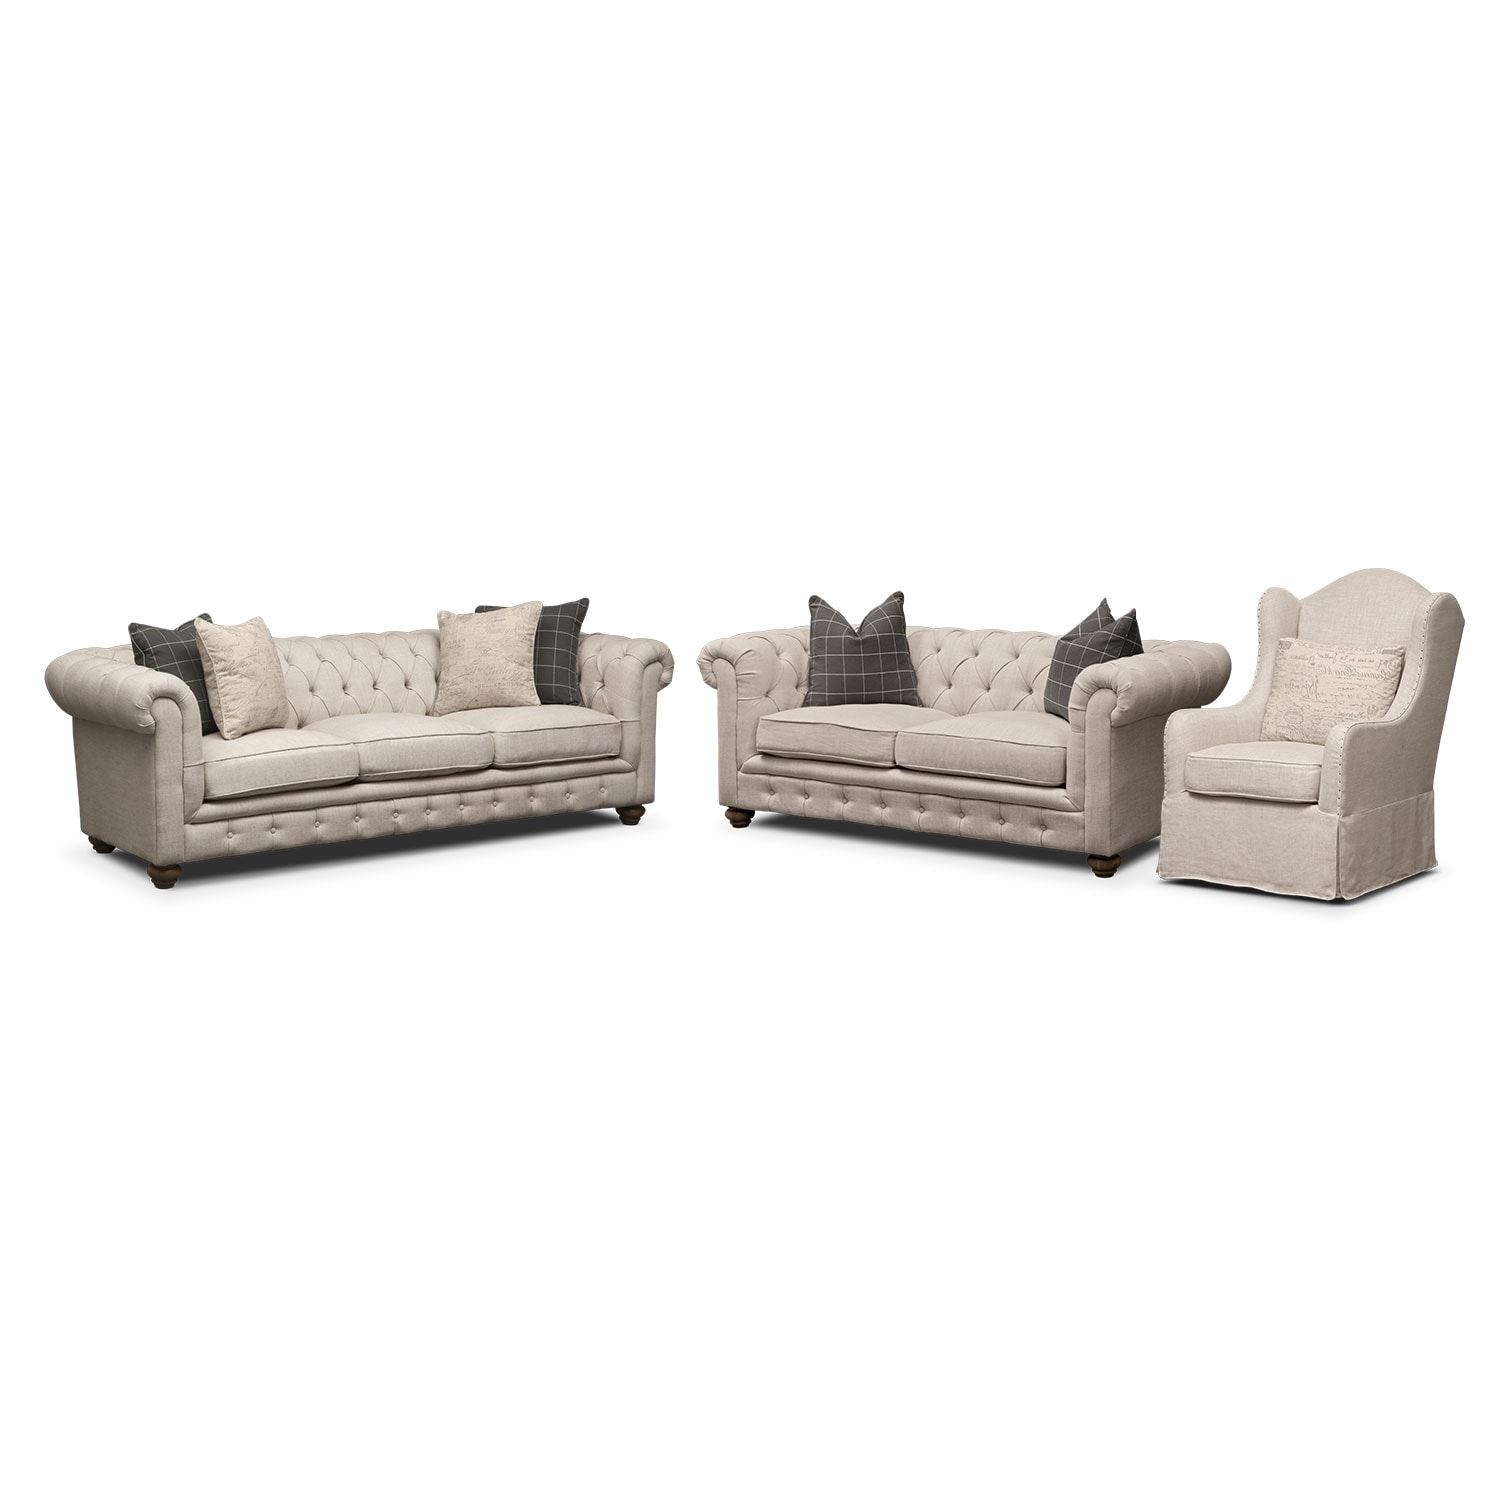 Living Room Furniture - Madeline Sofa, Apartment Sofa and Accent Chair Set - Beige